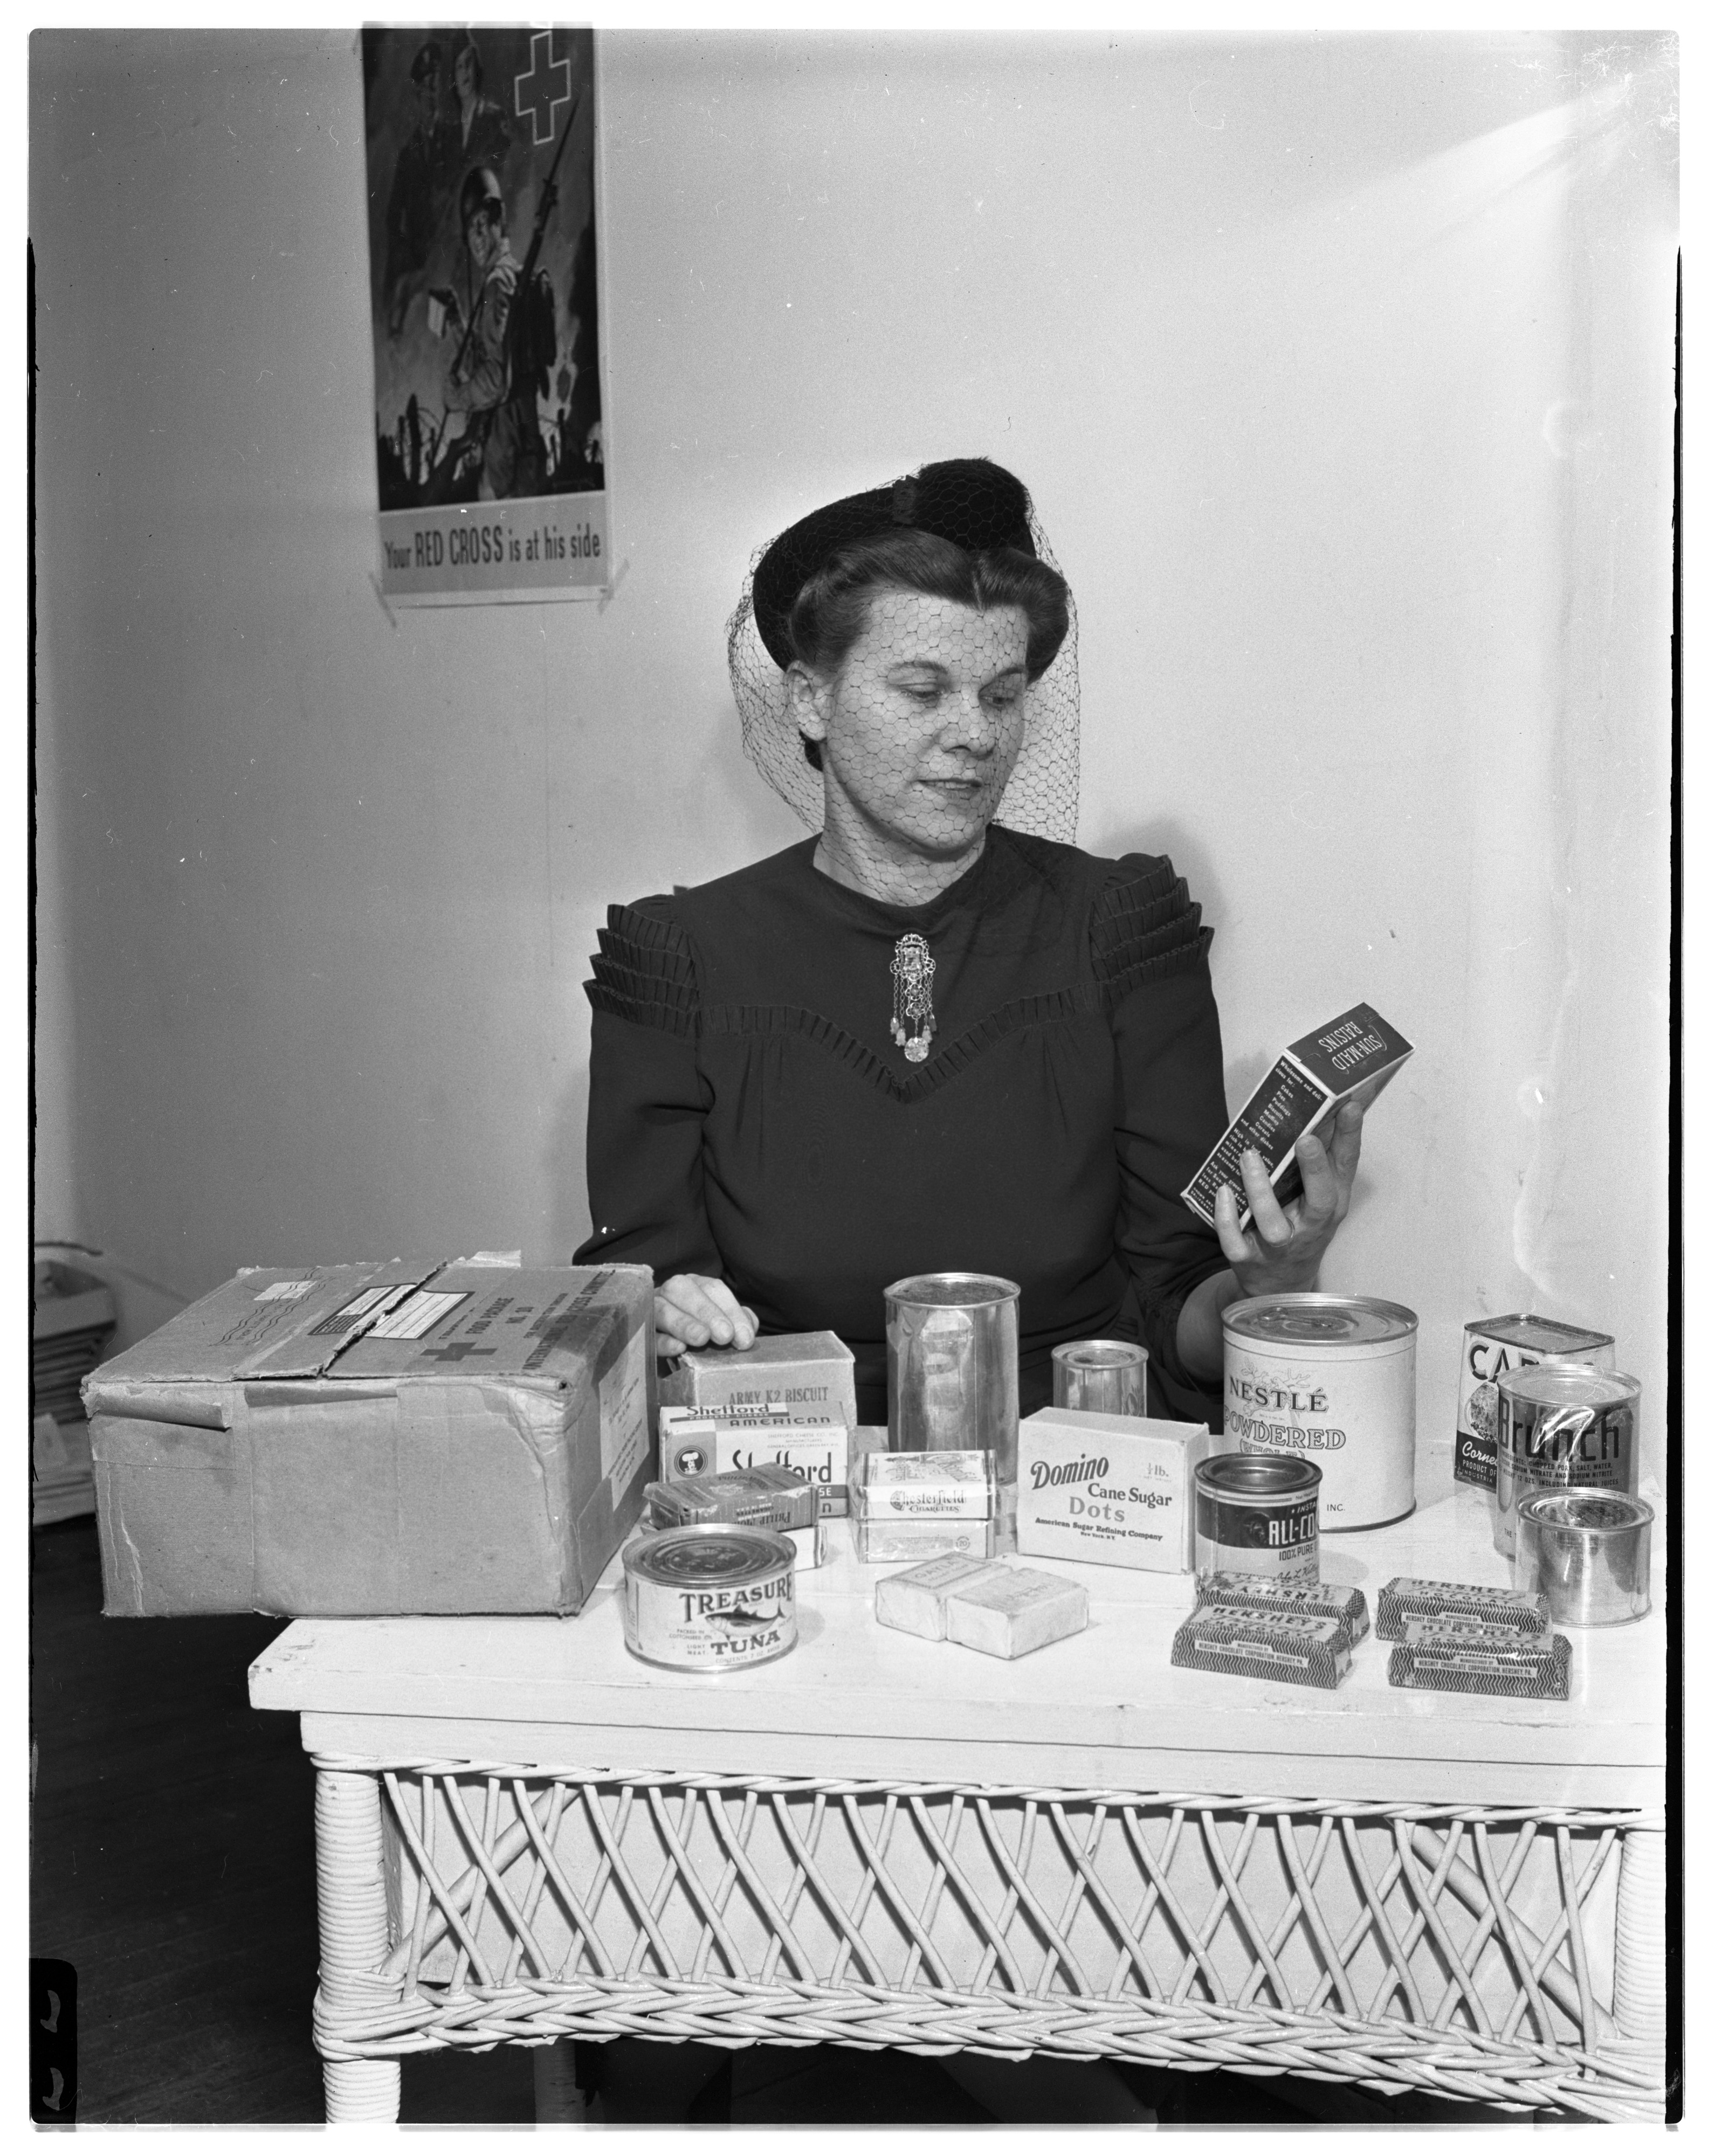 Irene Dumond packs Red Cross package for her son Jack, a POW, March 1944 image